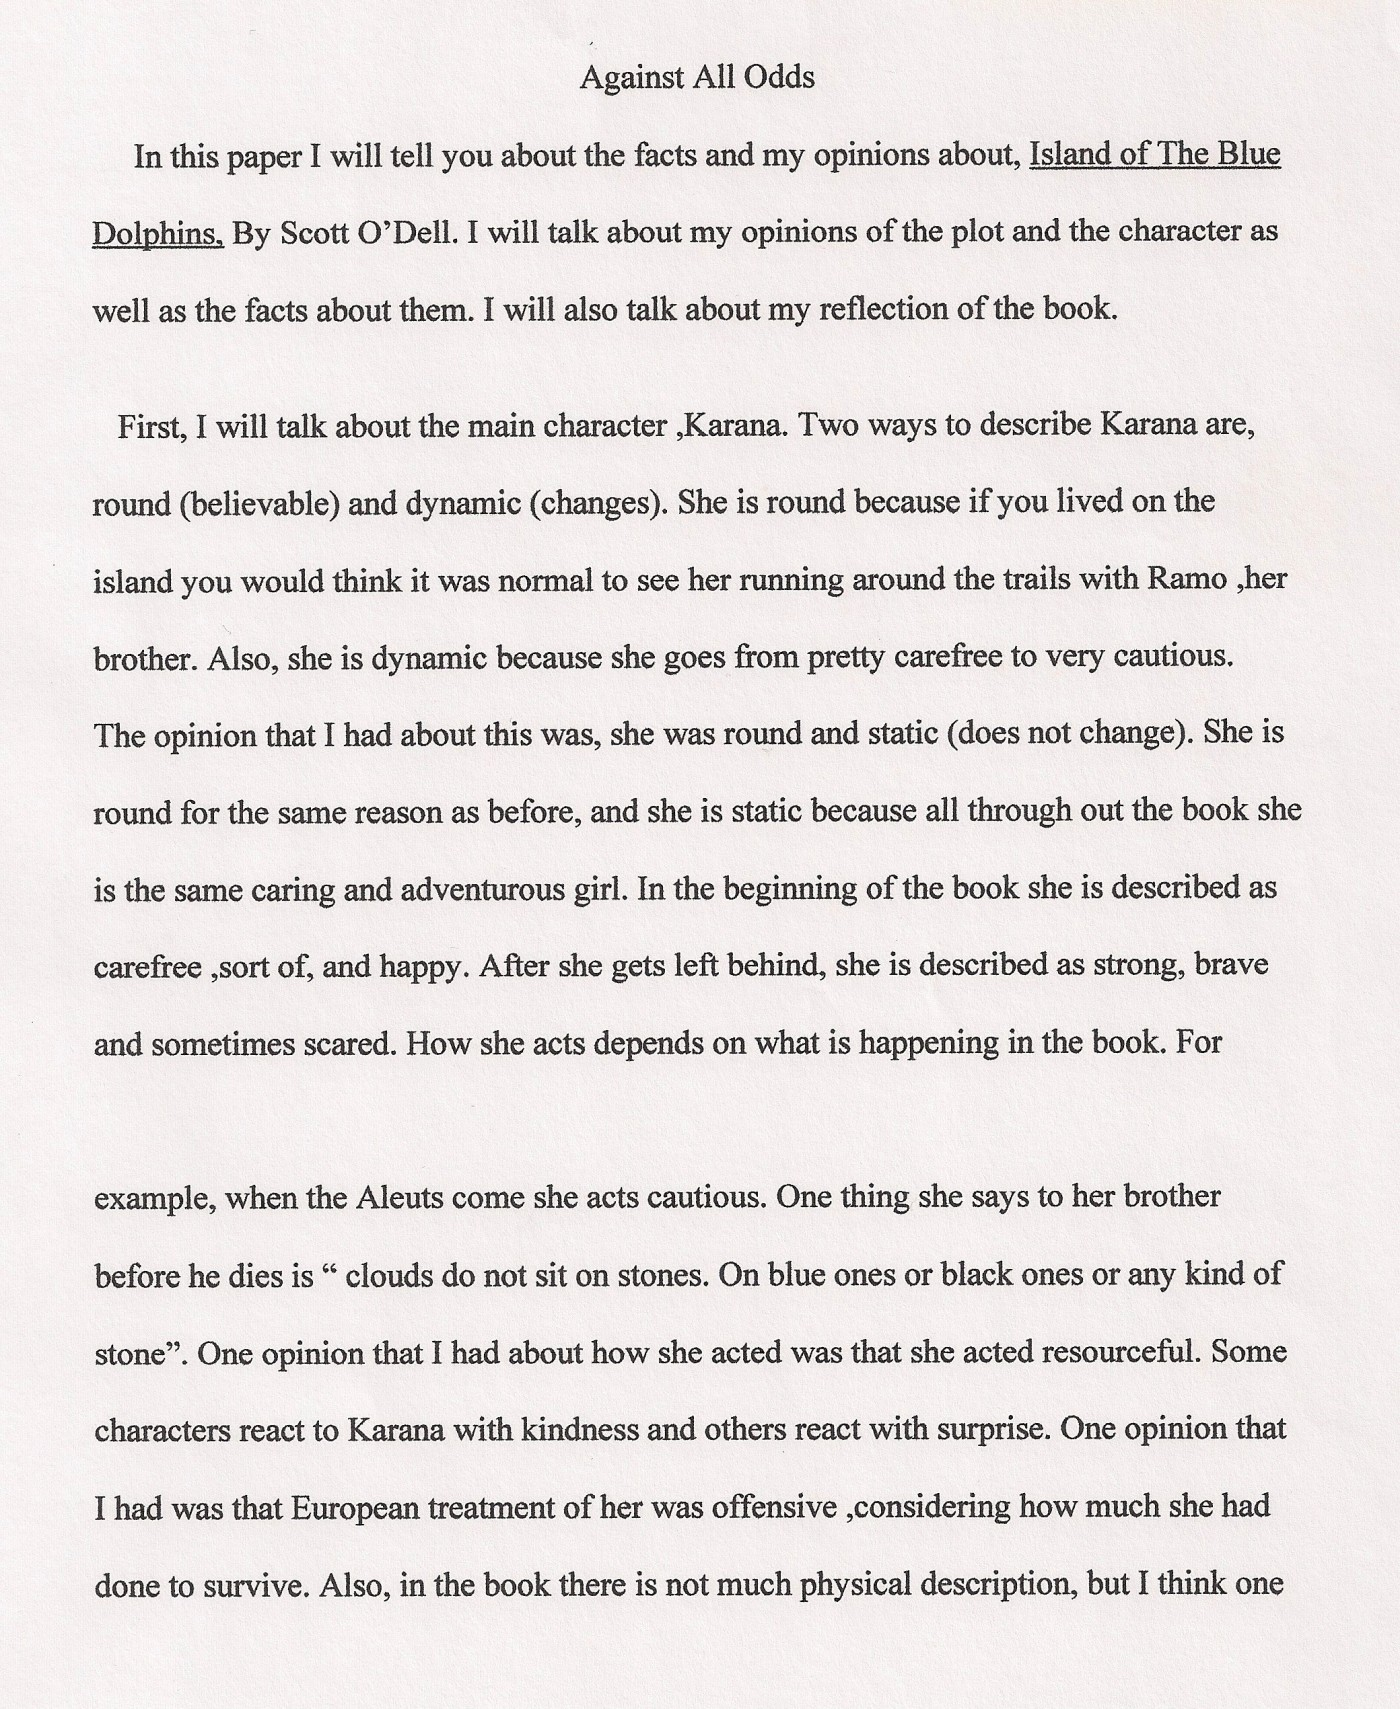 005 Essay Example Against All Odds Explanatory Fascinating Topics Informative For College High School Prompt 4th Grade 1400